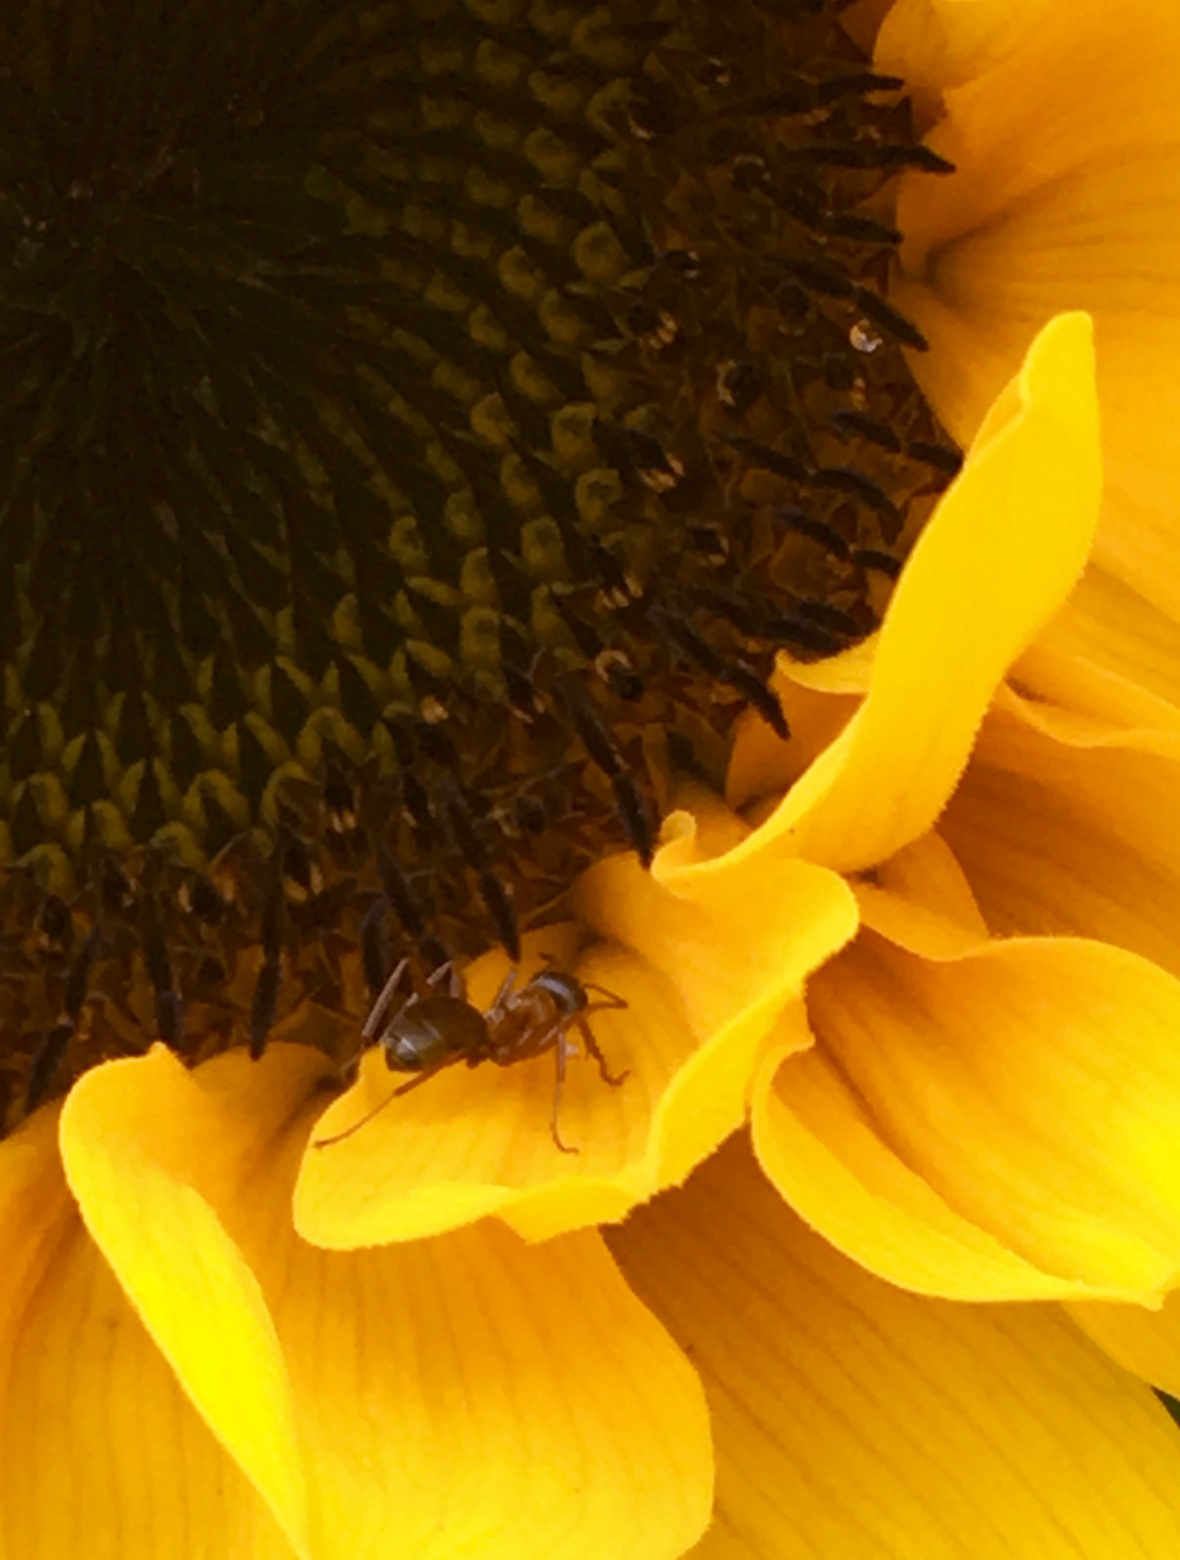 sweet-spot-ant-sunflower